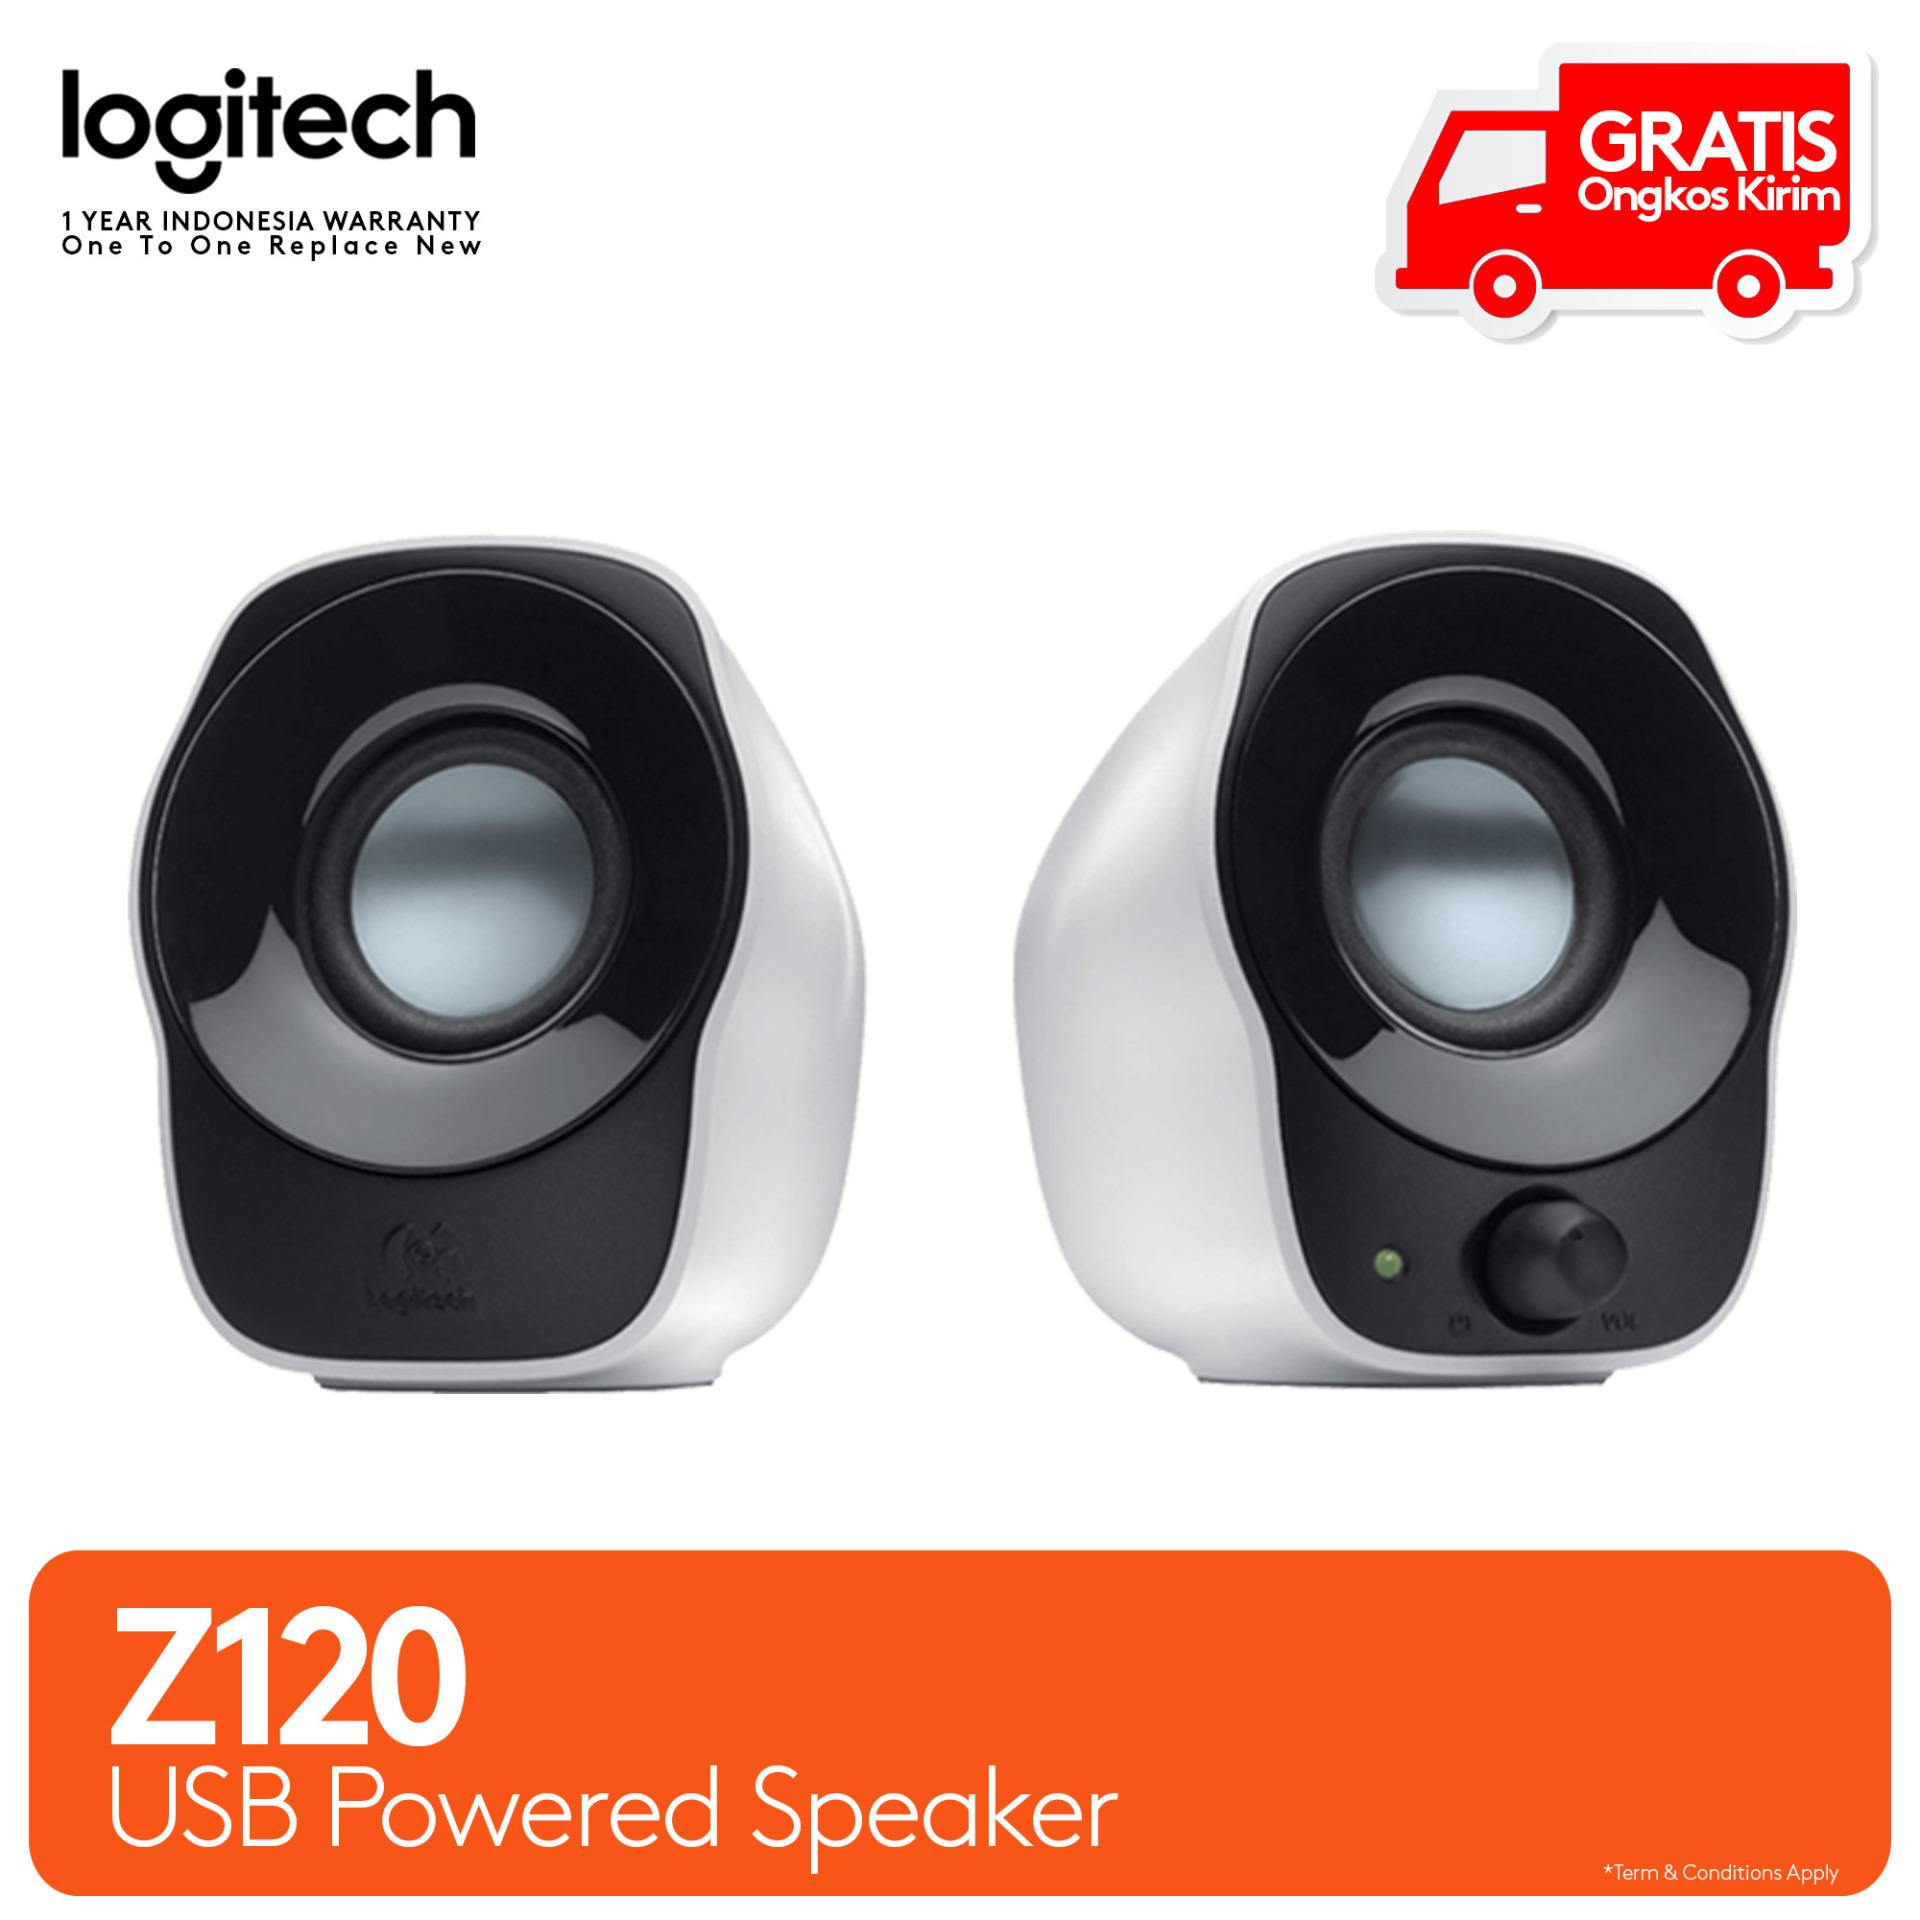 Logitech Speaker Z120 2.0 - Stereo Speakers - USB Power